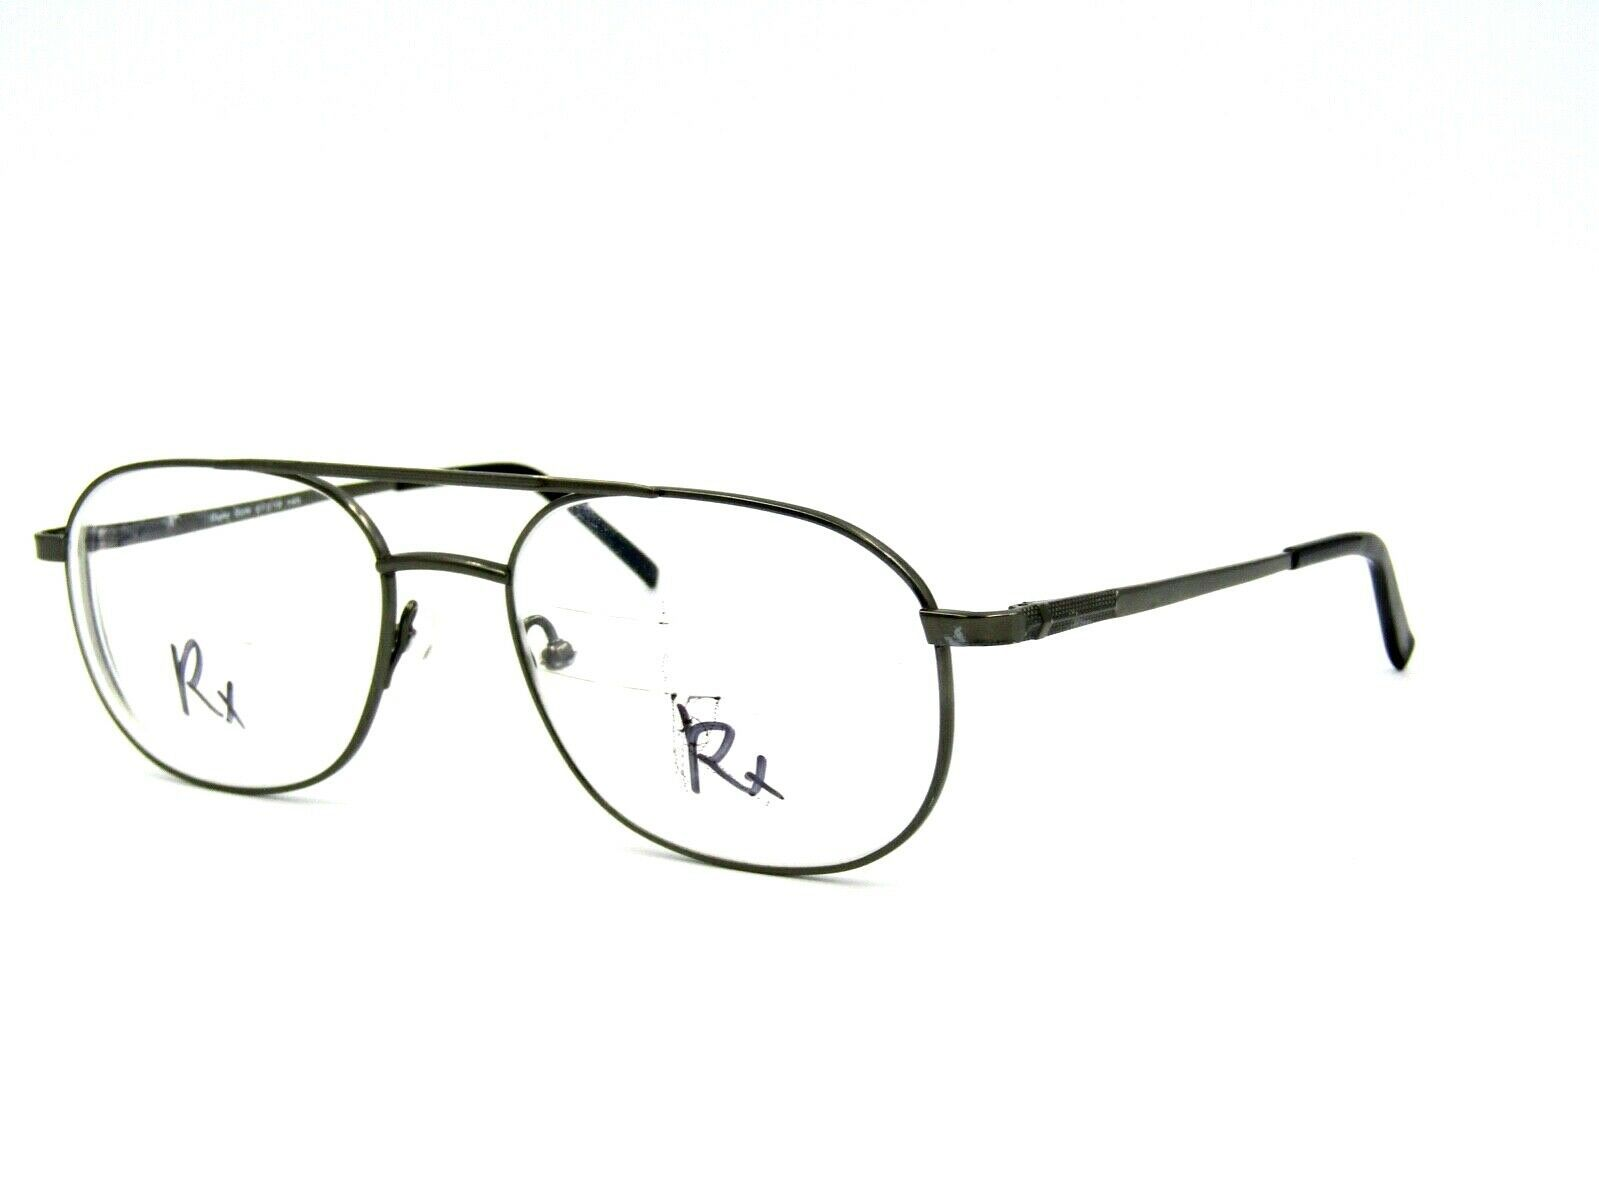 Primary image for Van Heusen CLYDE Men's Metal Eyeglasses Frame, Gunmetal. 57-19-145, WIDE ! #73D